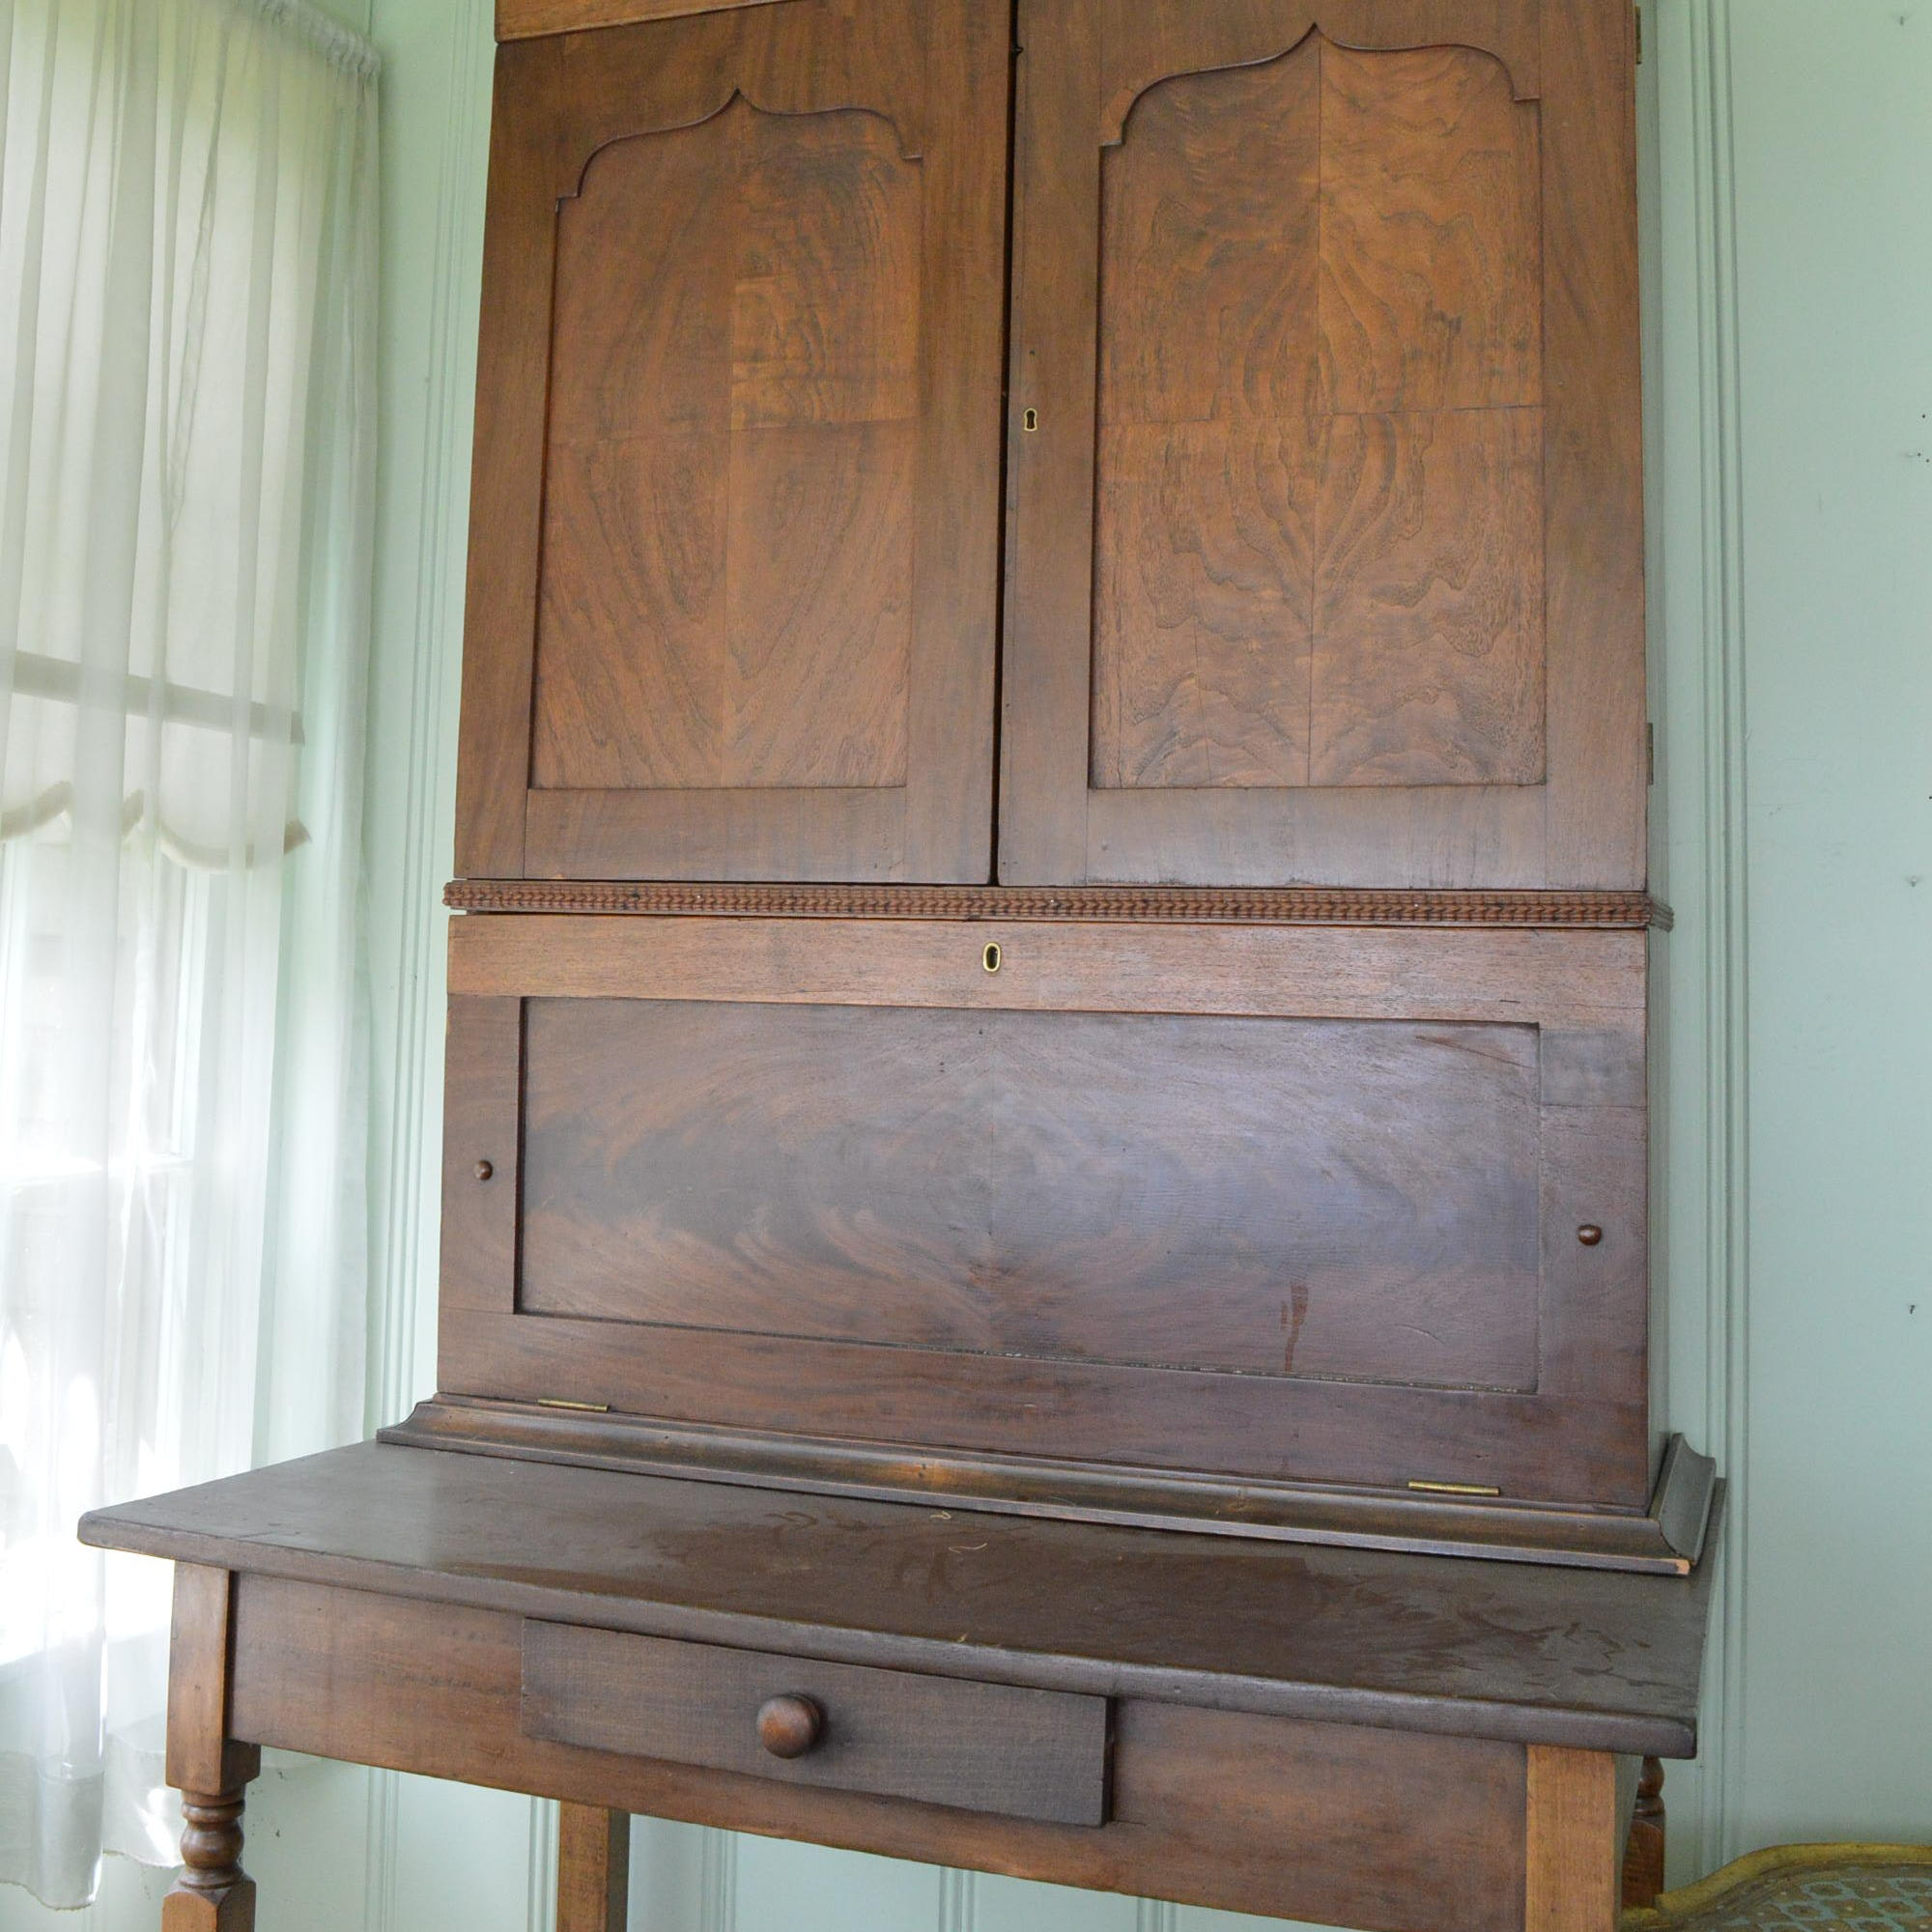 Antique Secrétaire Bookcase on Table